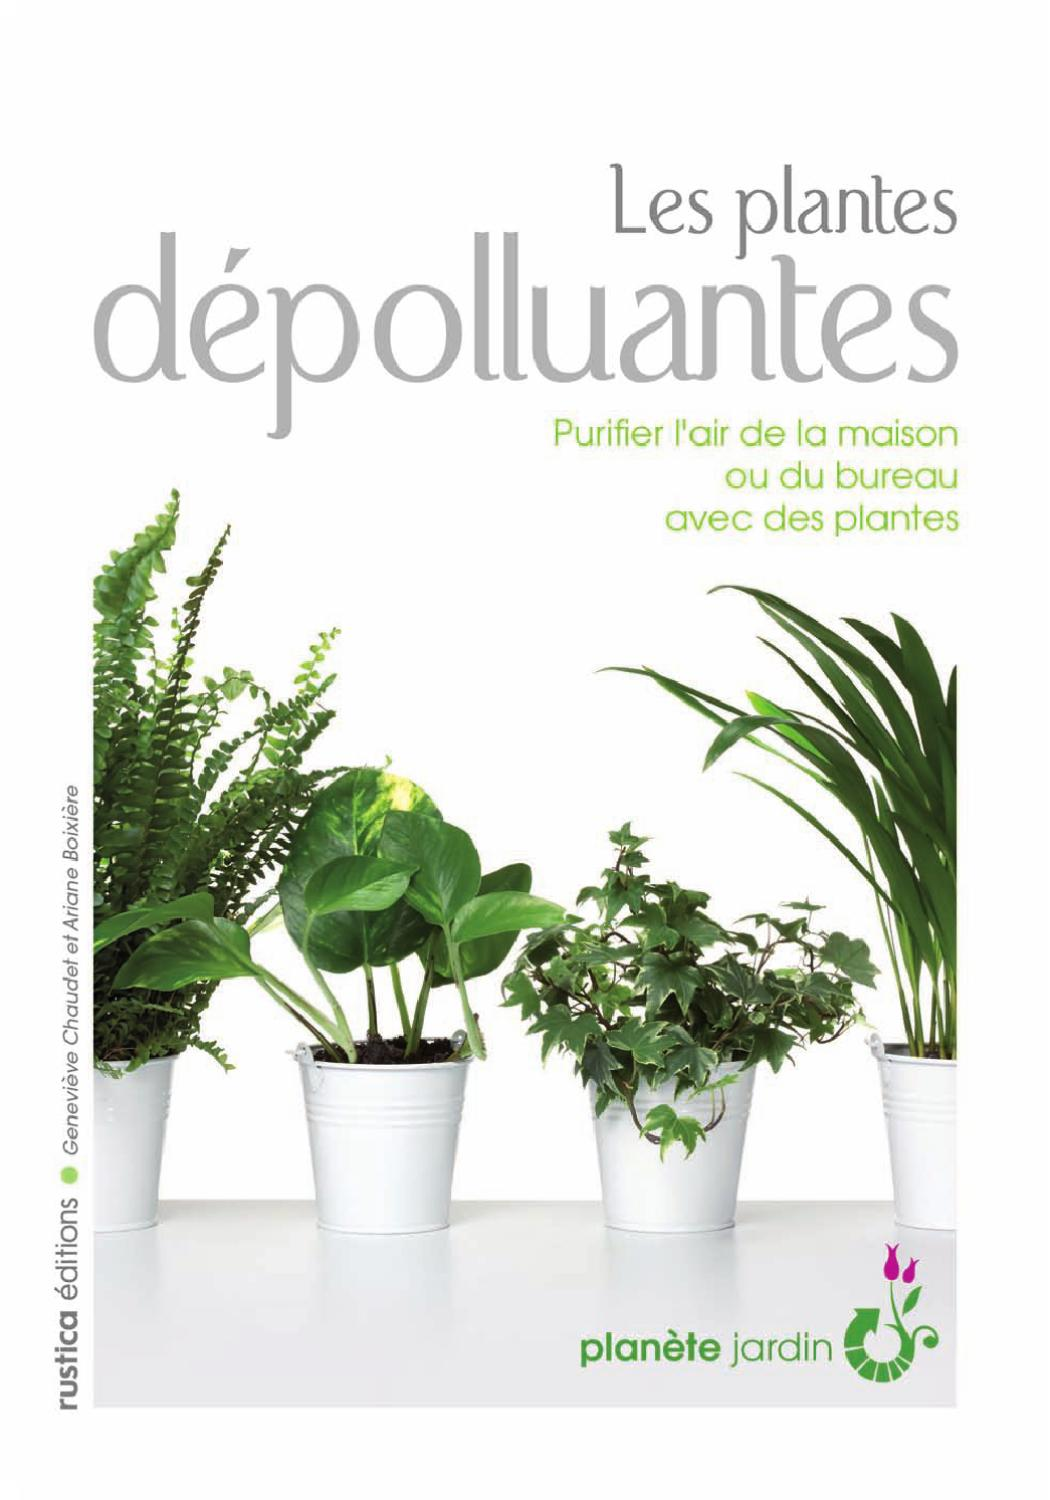 48660 apercu by fleurus editions issuu for Les plantes